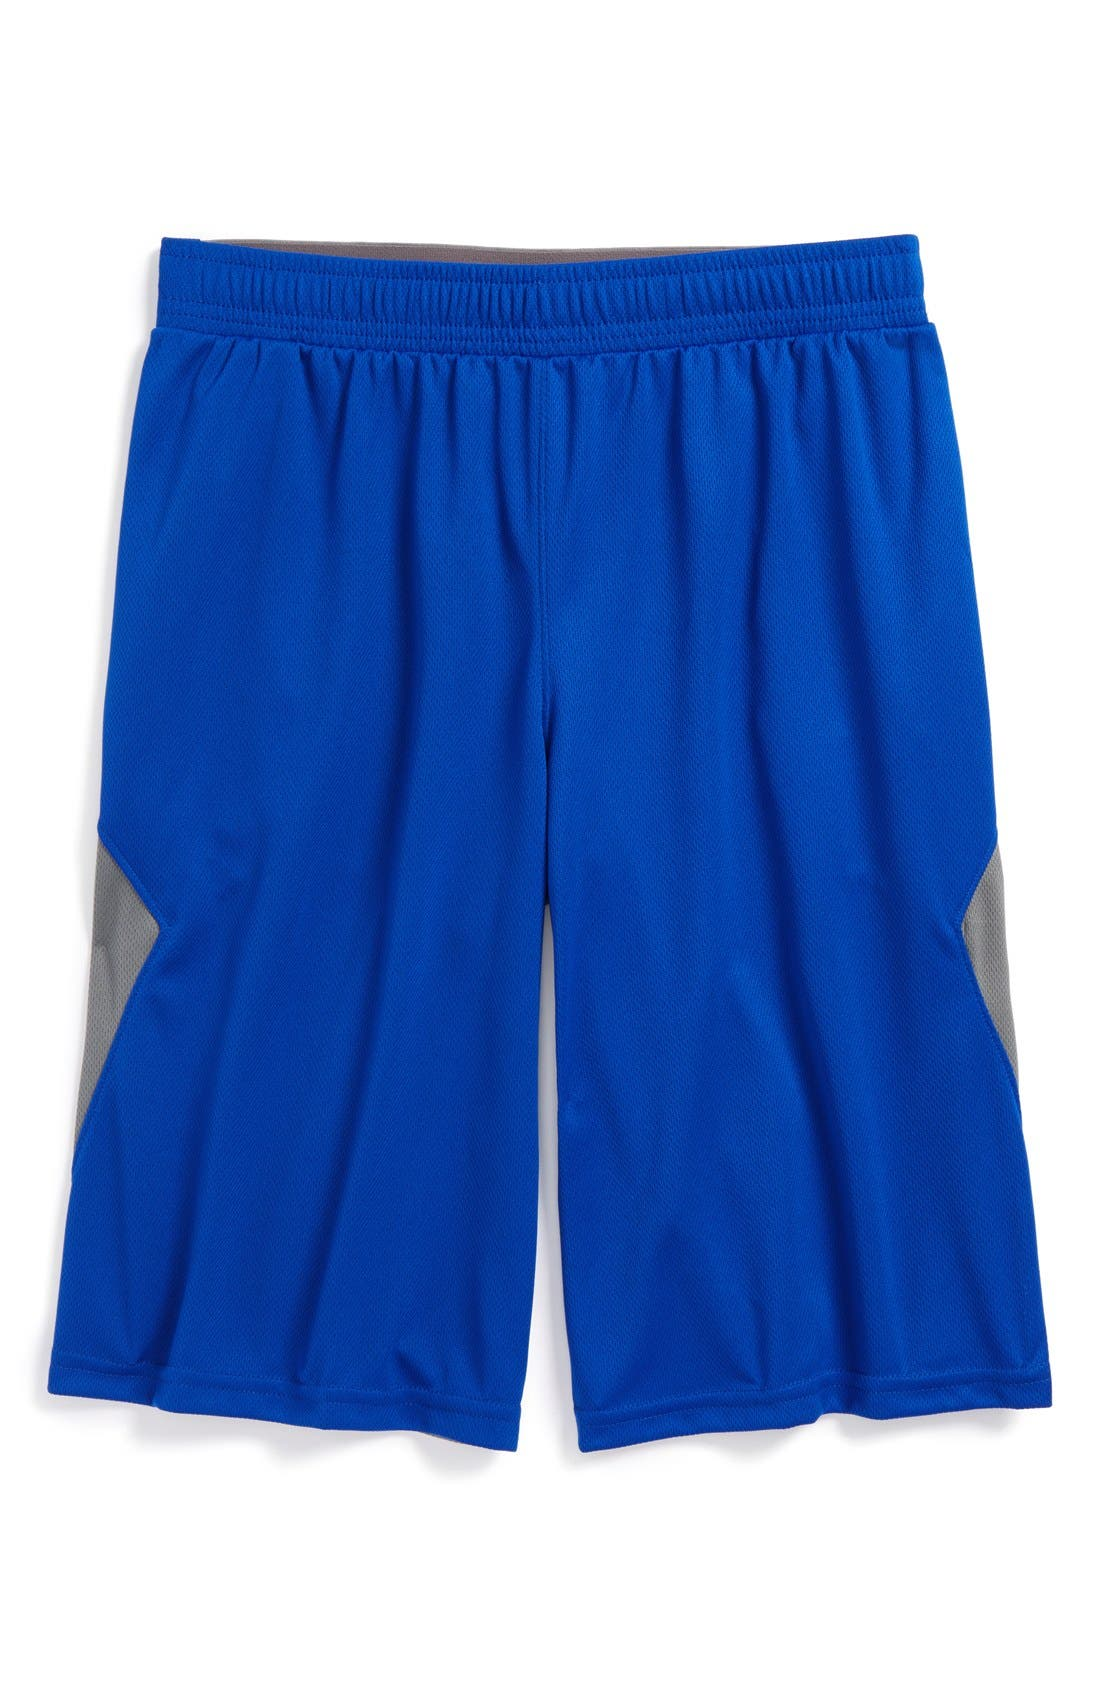 Main Image - Under Armour 'From Downtown' HeatGear® Shorts (Big Boys)